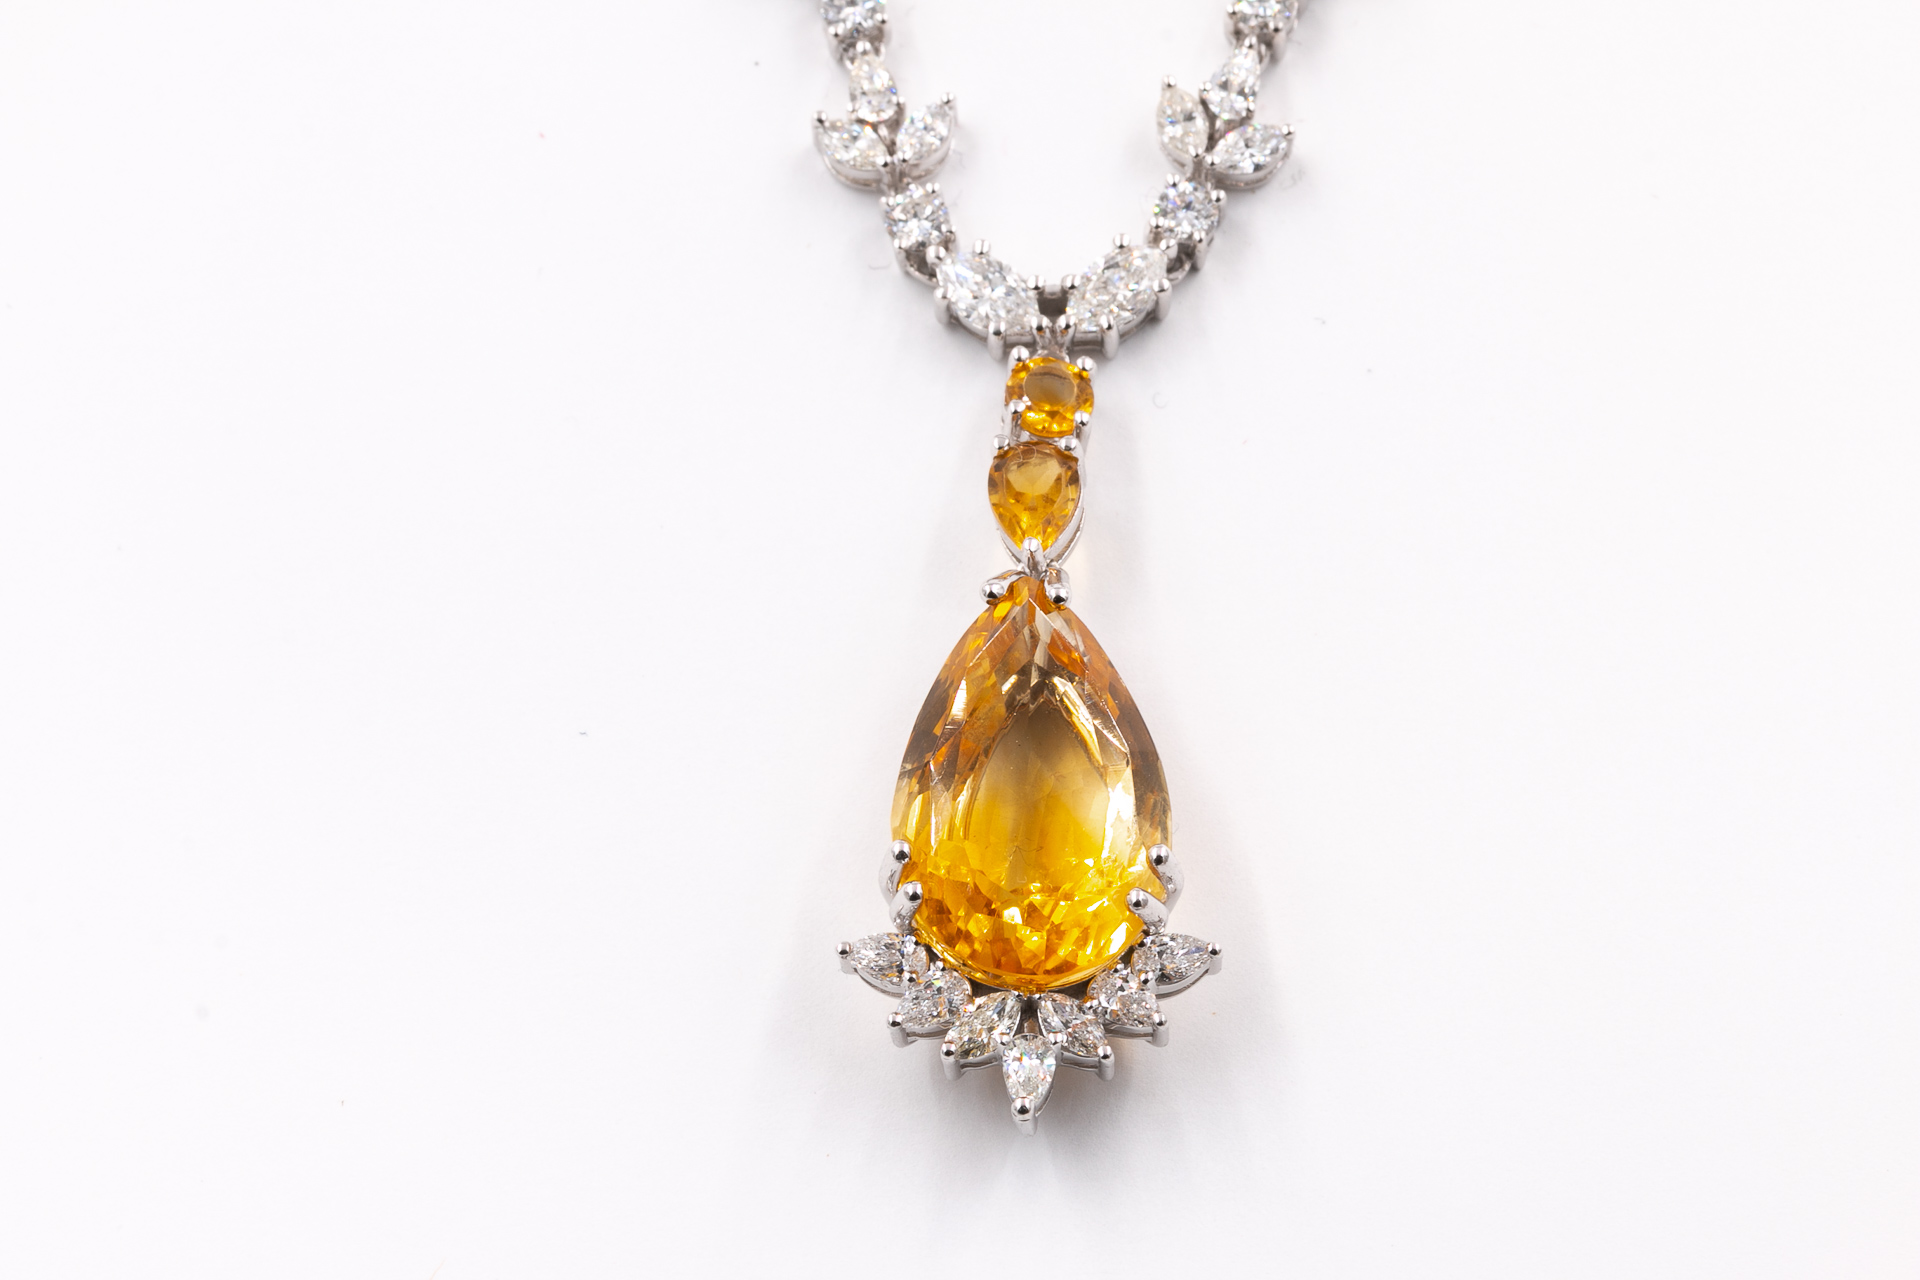 gemstone-diamond-necklace-jewelry-